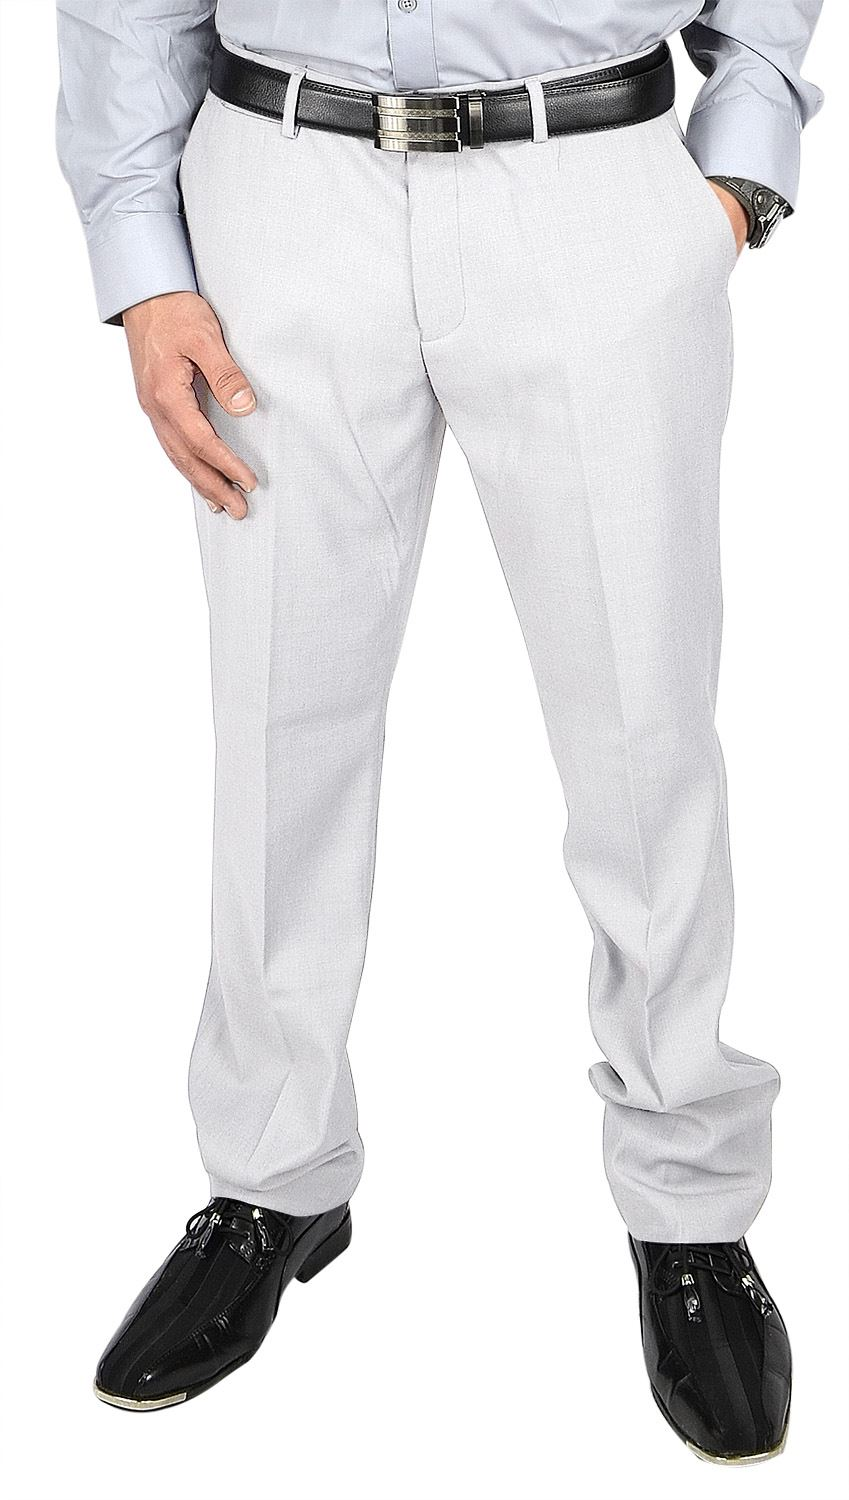 Moda Di Raza- Men's Pants Fashion Formal Business Wedding Dress Pants - White - Size -32x30